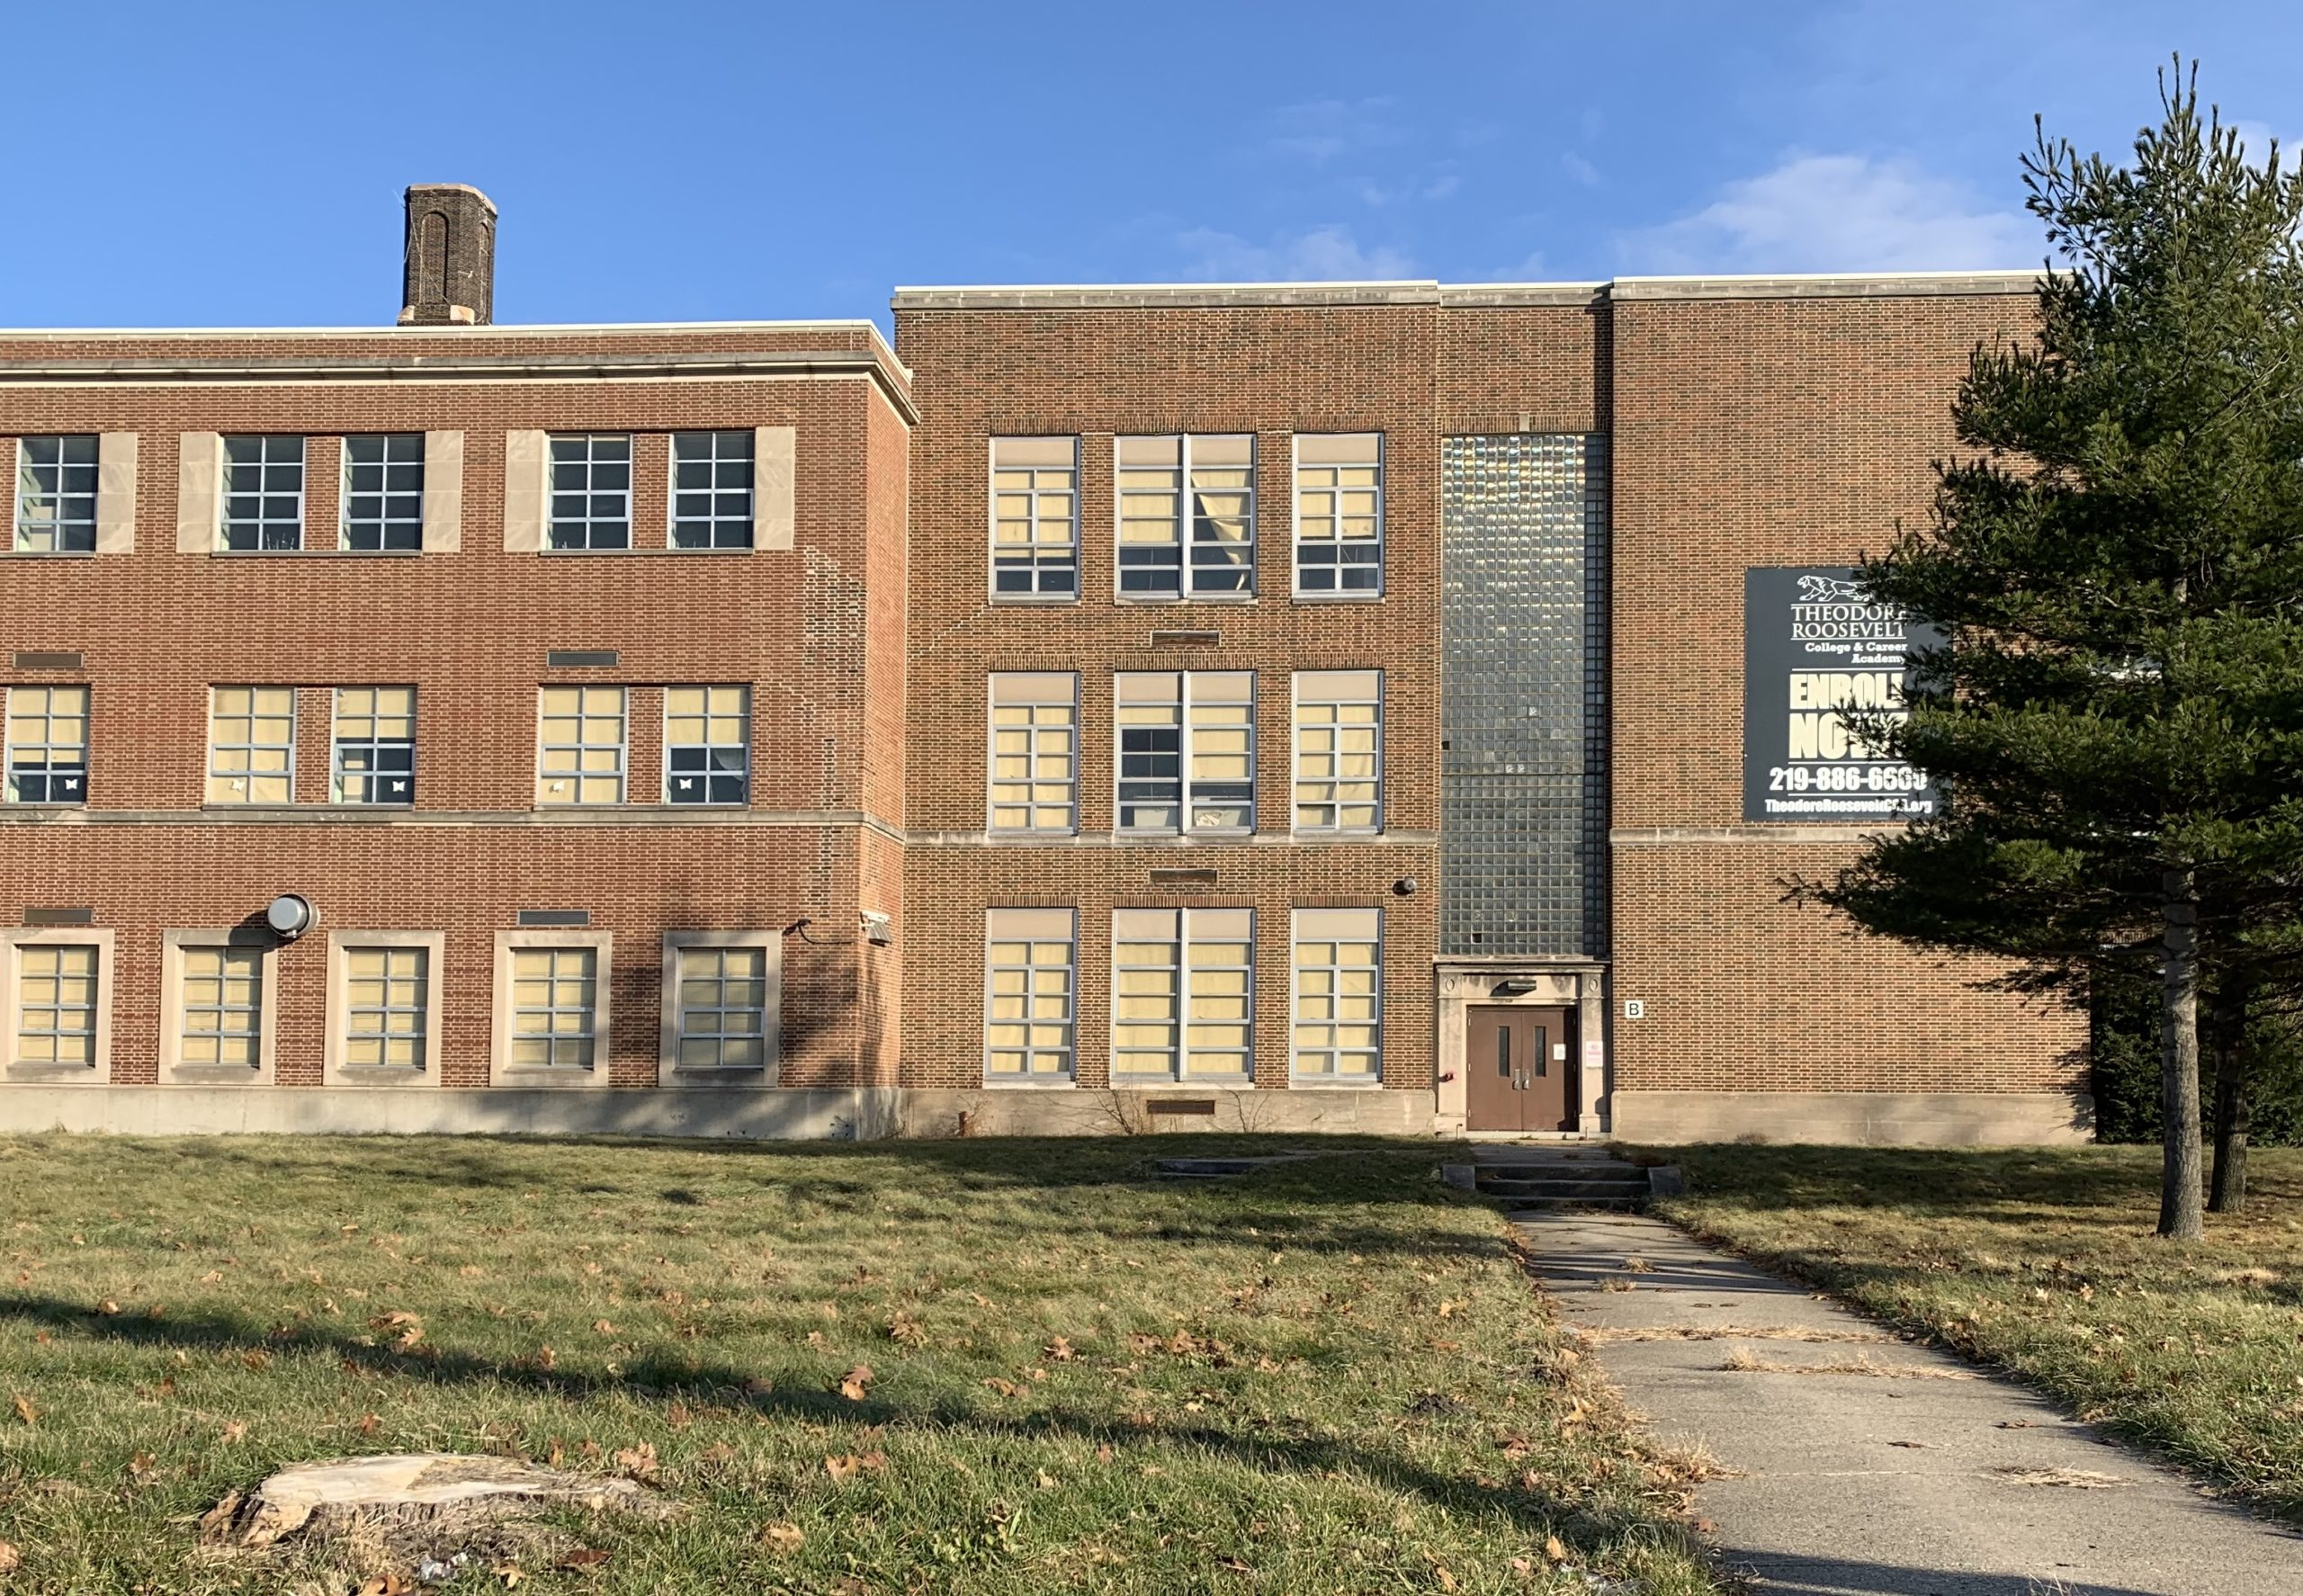 Theodore Roosevelt College & Career Academy in Gary sits empty waiting for repairs in December 2019.